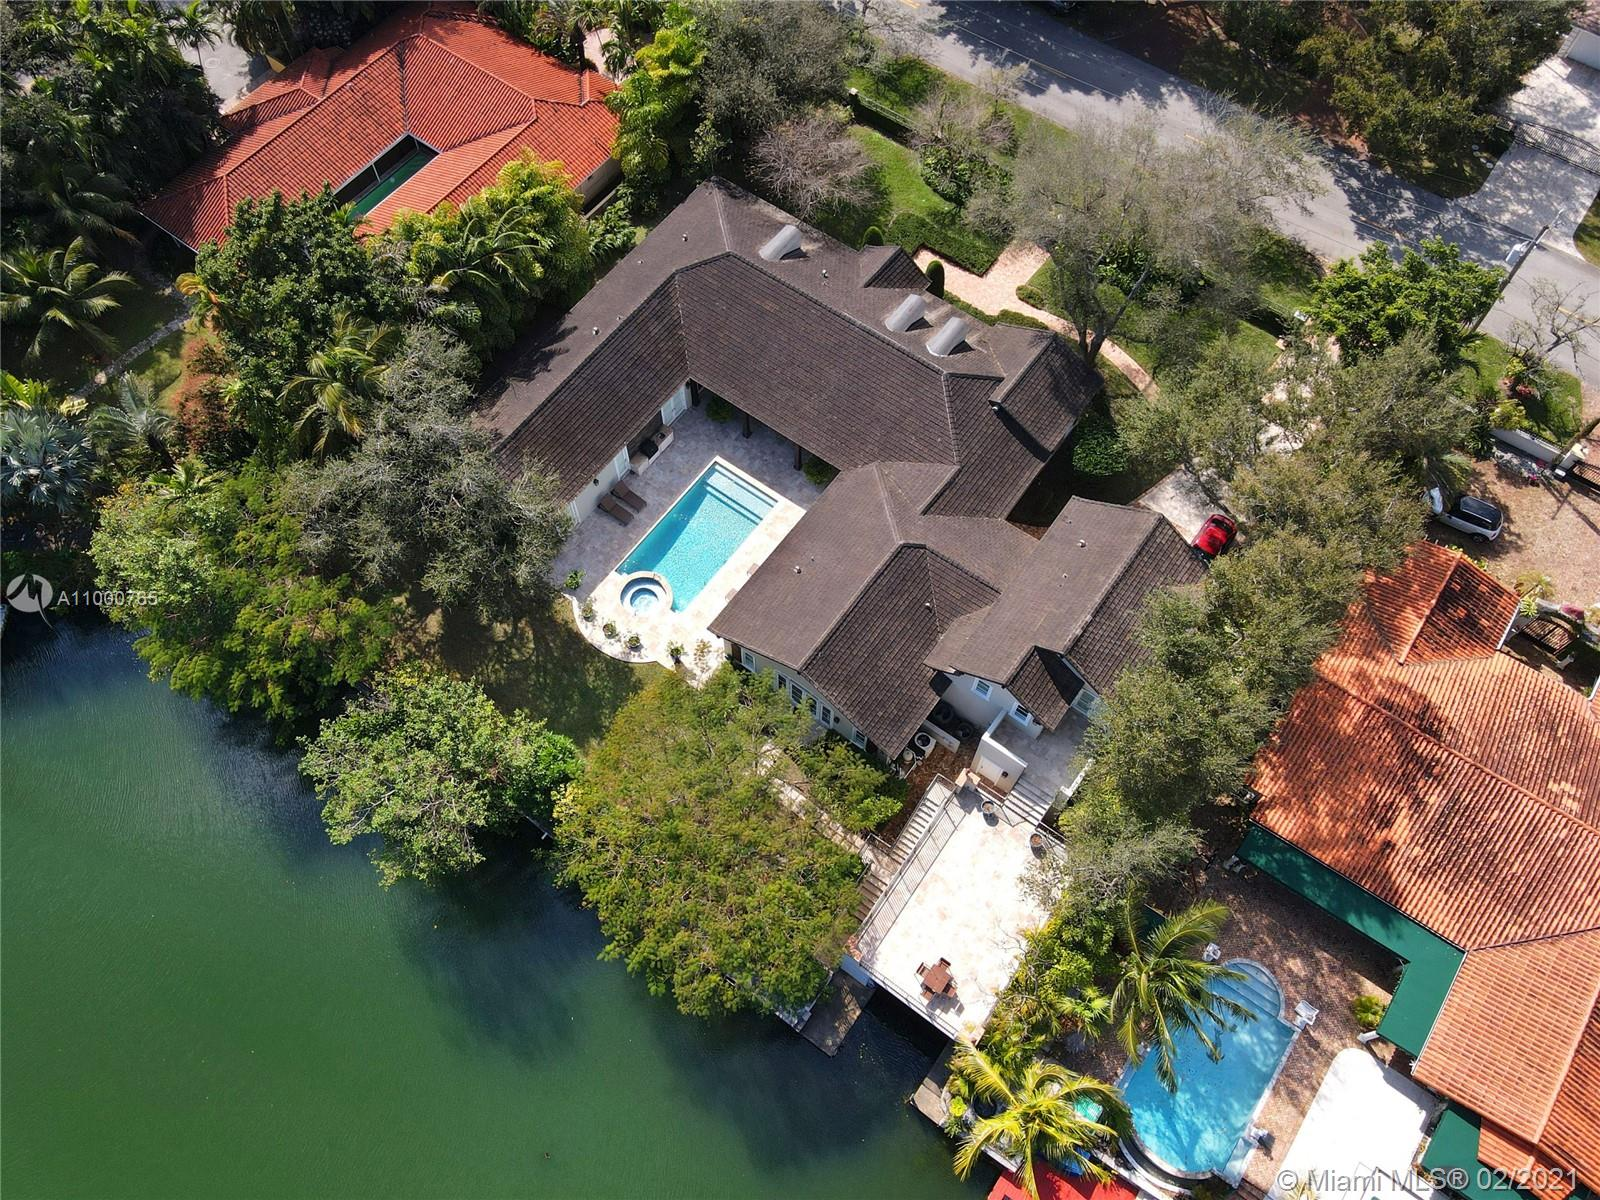 Boating or golf? Take your pick at this stunning, 2007-built & recently renovated home that is on the waterway & across the street from the Riviera golf course.  The 6 BR, 5.5 BA property, on walled & gated 24,258 SF lot w/ 150' on the water, features soaring wood-beamed ceilings, gorgeous finishes, & perfect entertaining spaces. Inside find the stunning formal liv & din rms, casual family rm open to dreamy kitchen, + BR w/ full bath that serves as a den overlooking the water!  Outside there is a deep patio, built-in grill, sparkling pool w/ spa, & boathouse w/ huge deck on top!  Spacious primary ste w/ beautiful BA & lge closet, separate guest ste, + 3 more ample BRS. Spectacular details abound: generator, mahogany front dr, impact glass, high-end appliances, & more in the best location!